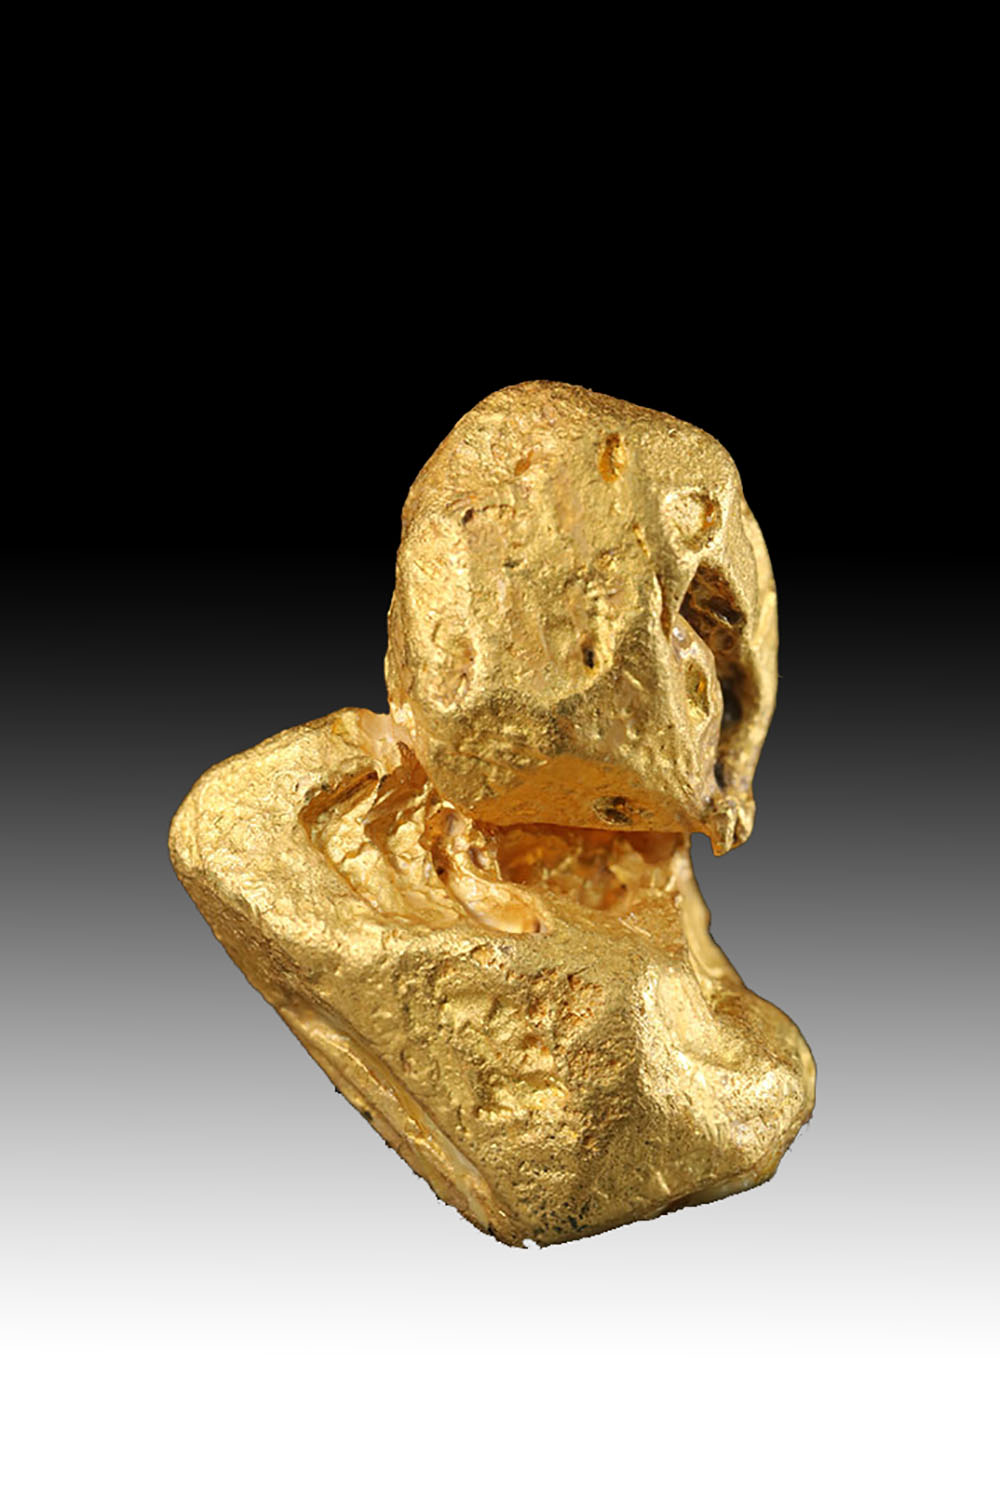 Brilliant Double Gold Crystal - Venezuelan Gold Nugget